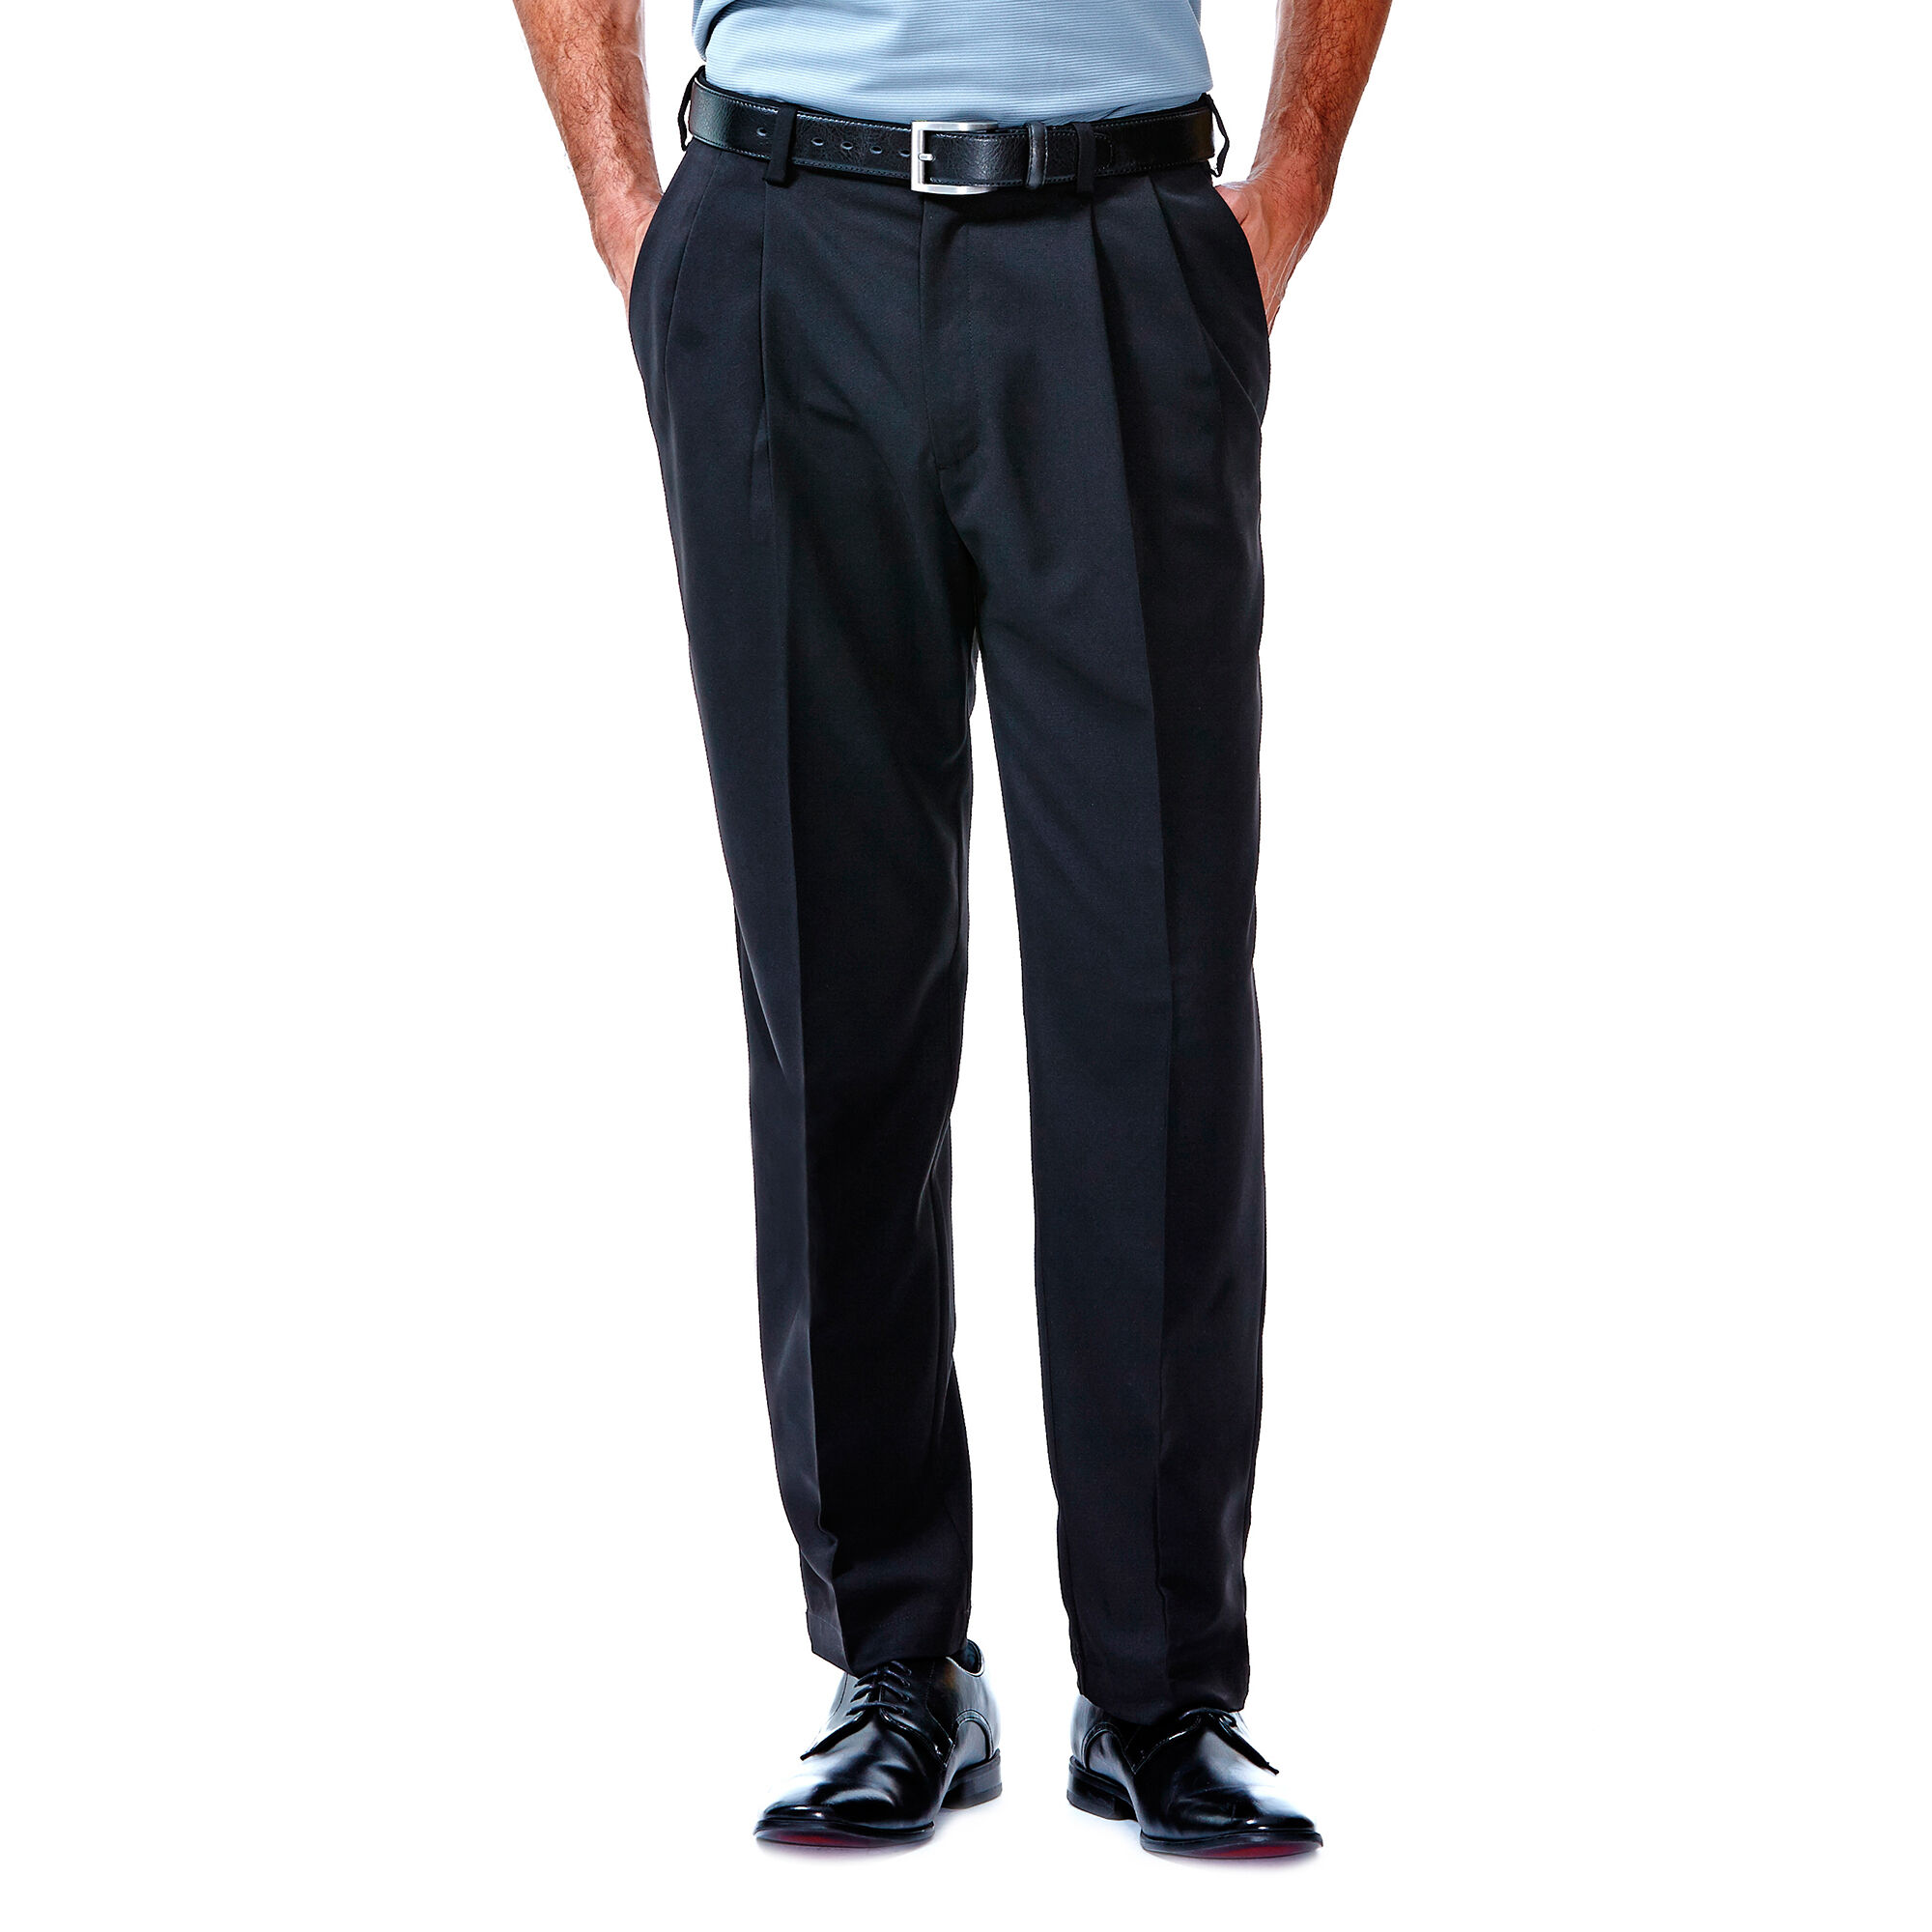 Cool 18 Pant | Classic Fit, Pleat, No Iron | Haggar.com